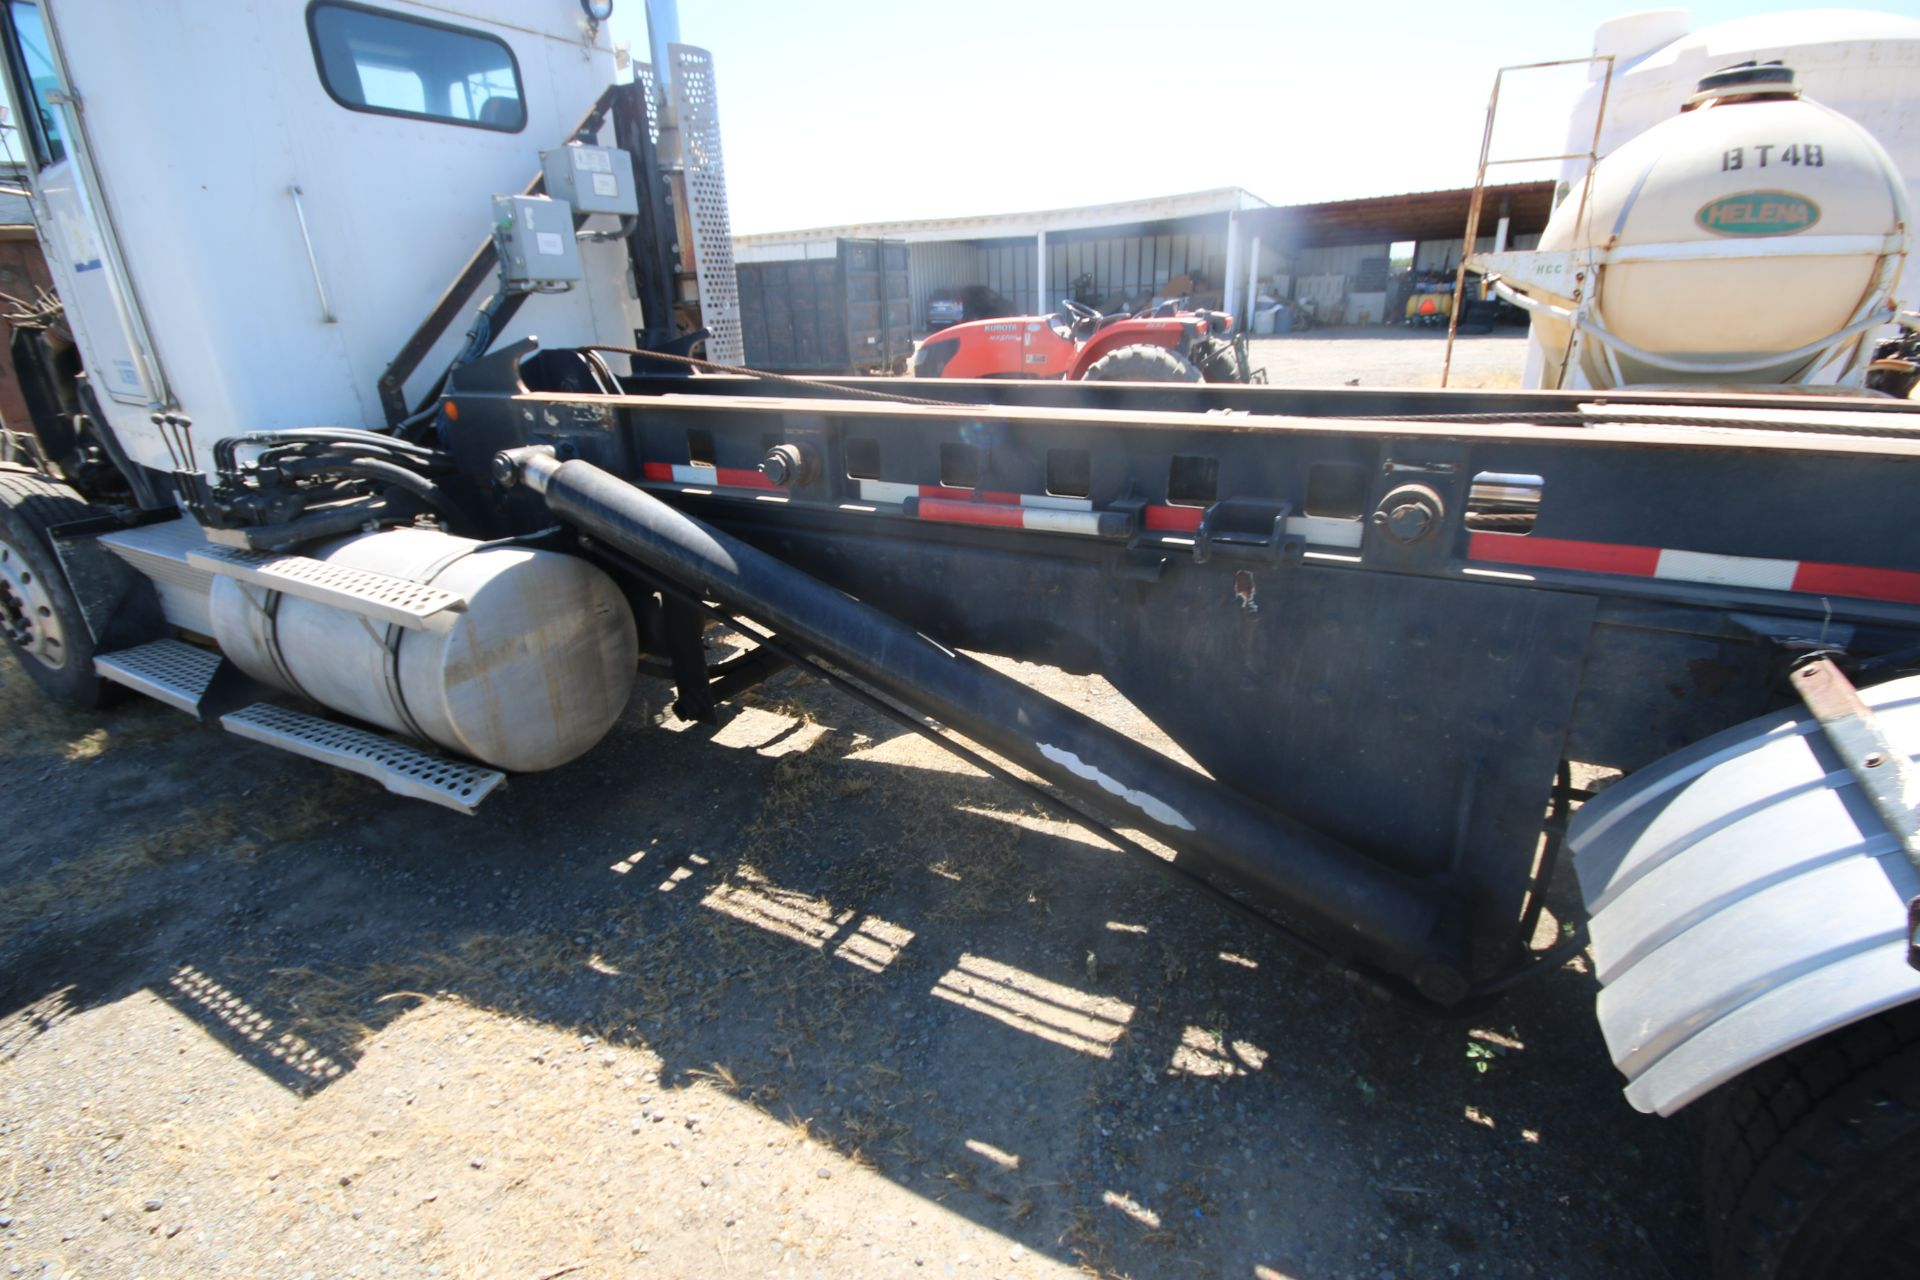 1996 Kenworth 3-Axle Roll-Off Straight Truck, VIN #: 1XKDDB9XOTS687107, with 24,722 Miles, License - Image 29 of 30